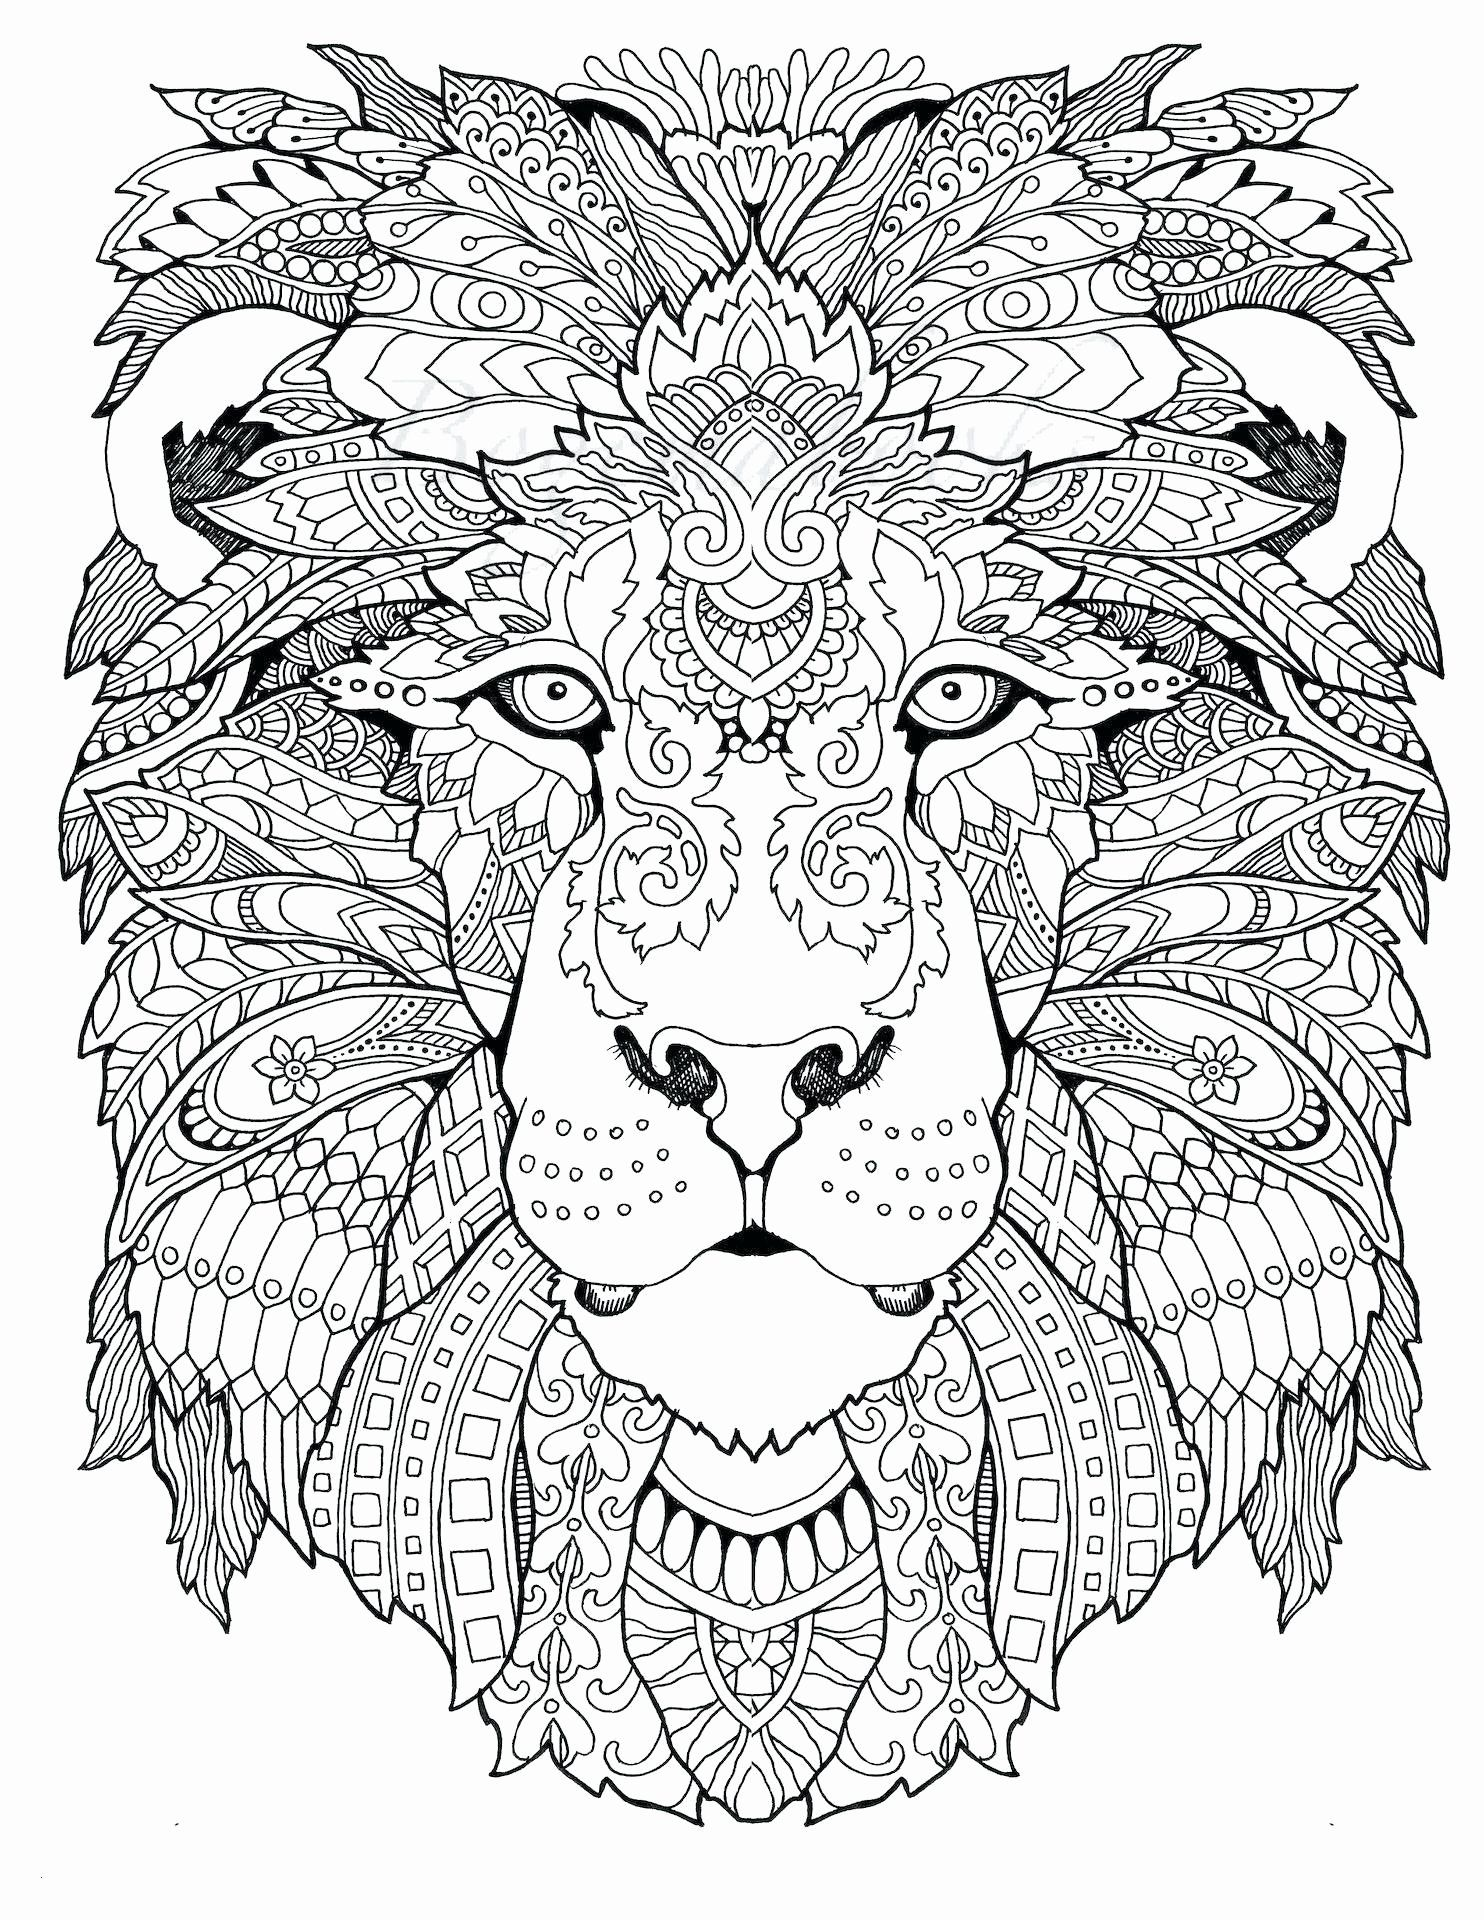 13+ Wild animal coloring pages ideas in 2021